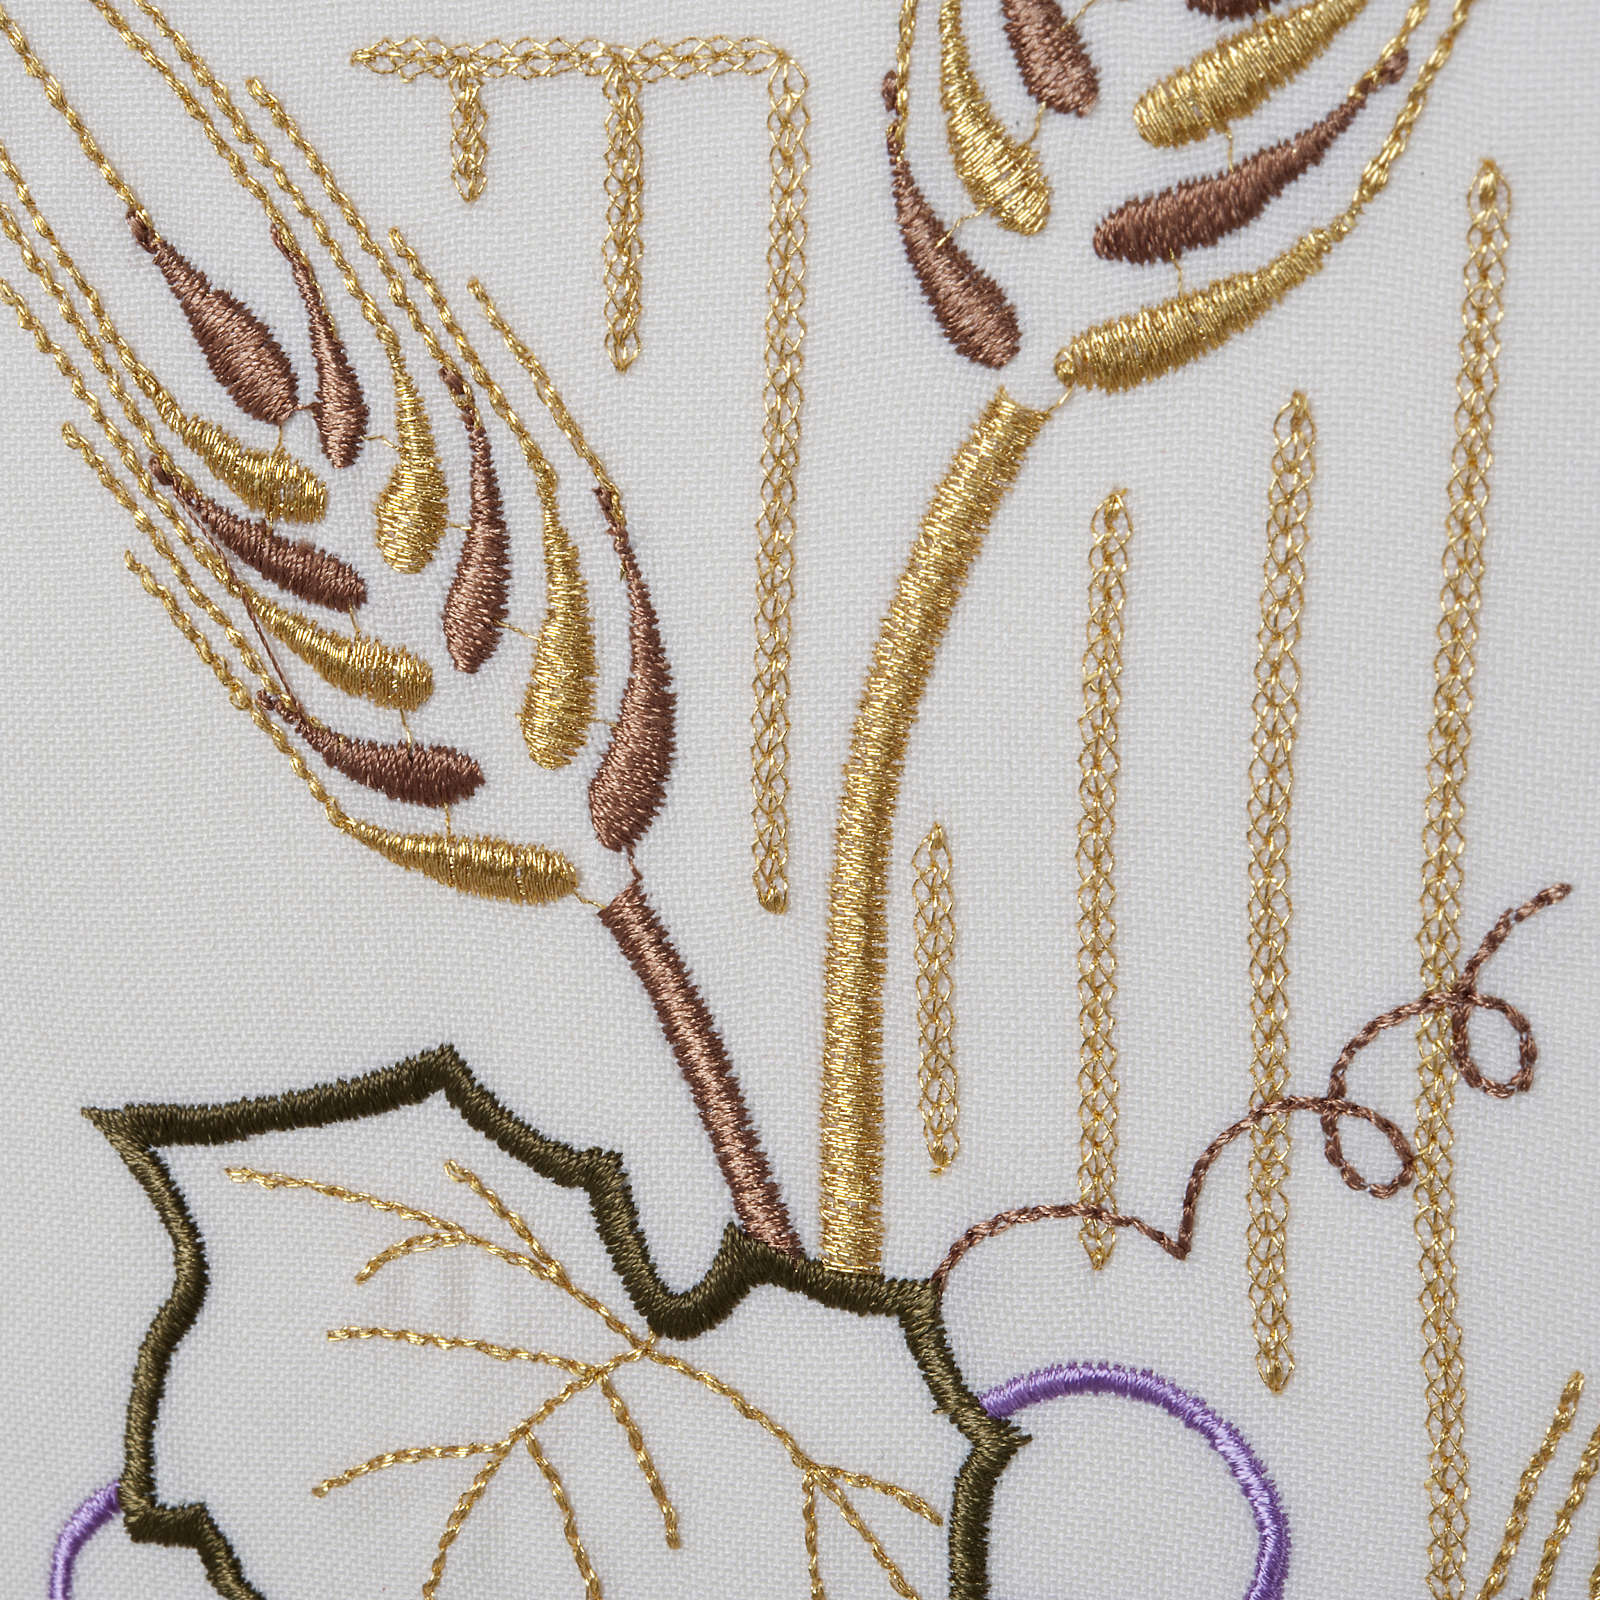 Lectern Cover, stylized cross, grapes, wheat, in liturgical colo 4